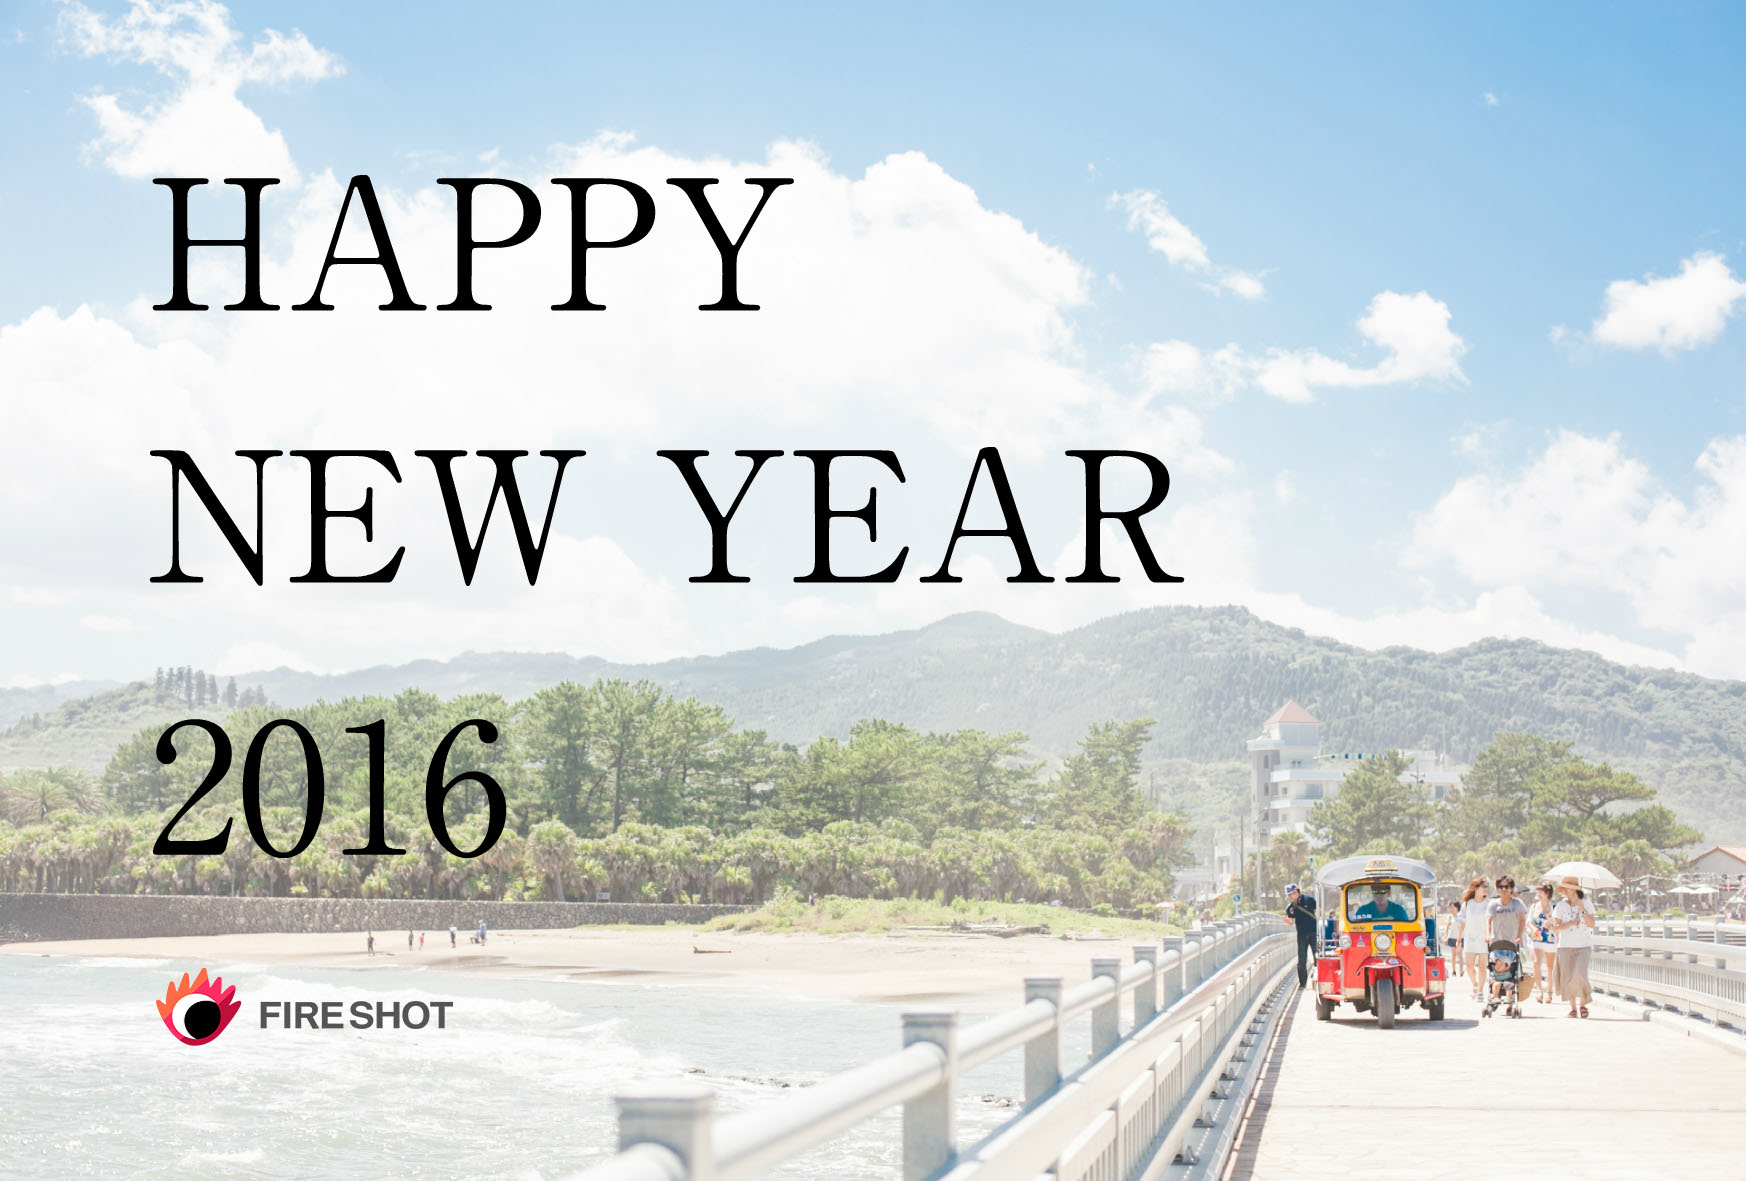 HAPPY NEW YEAR 2016 FIRESHOT